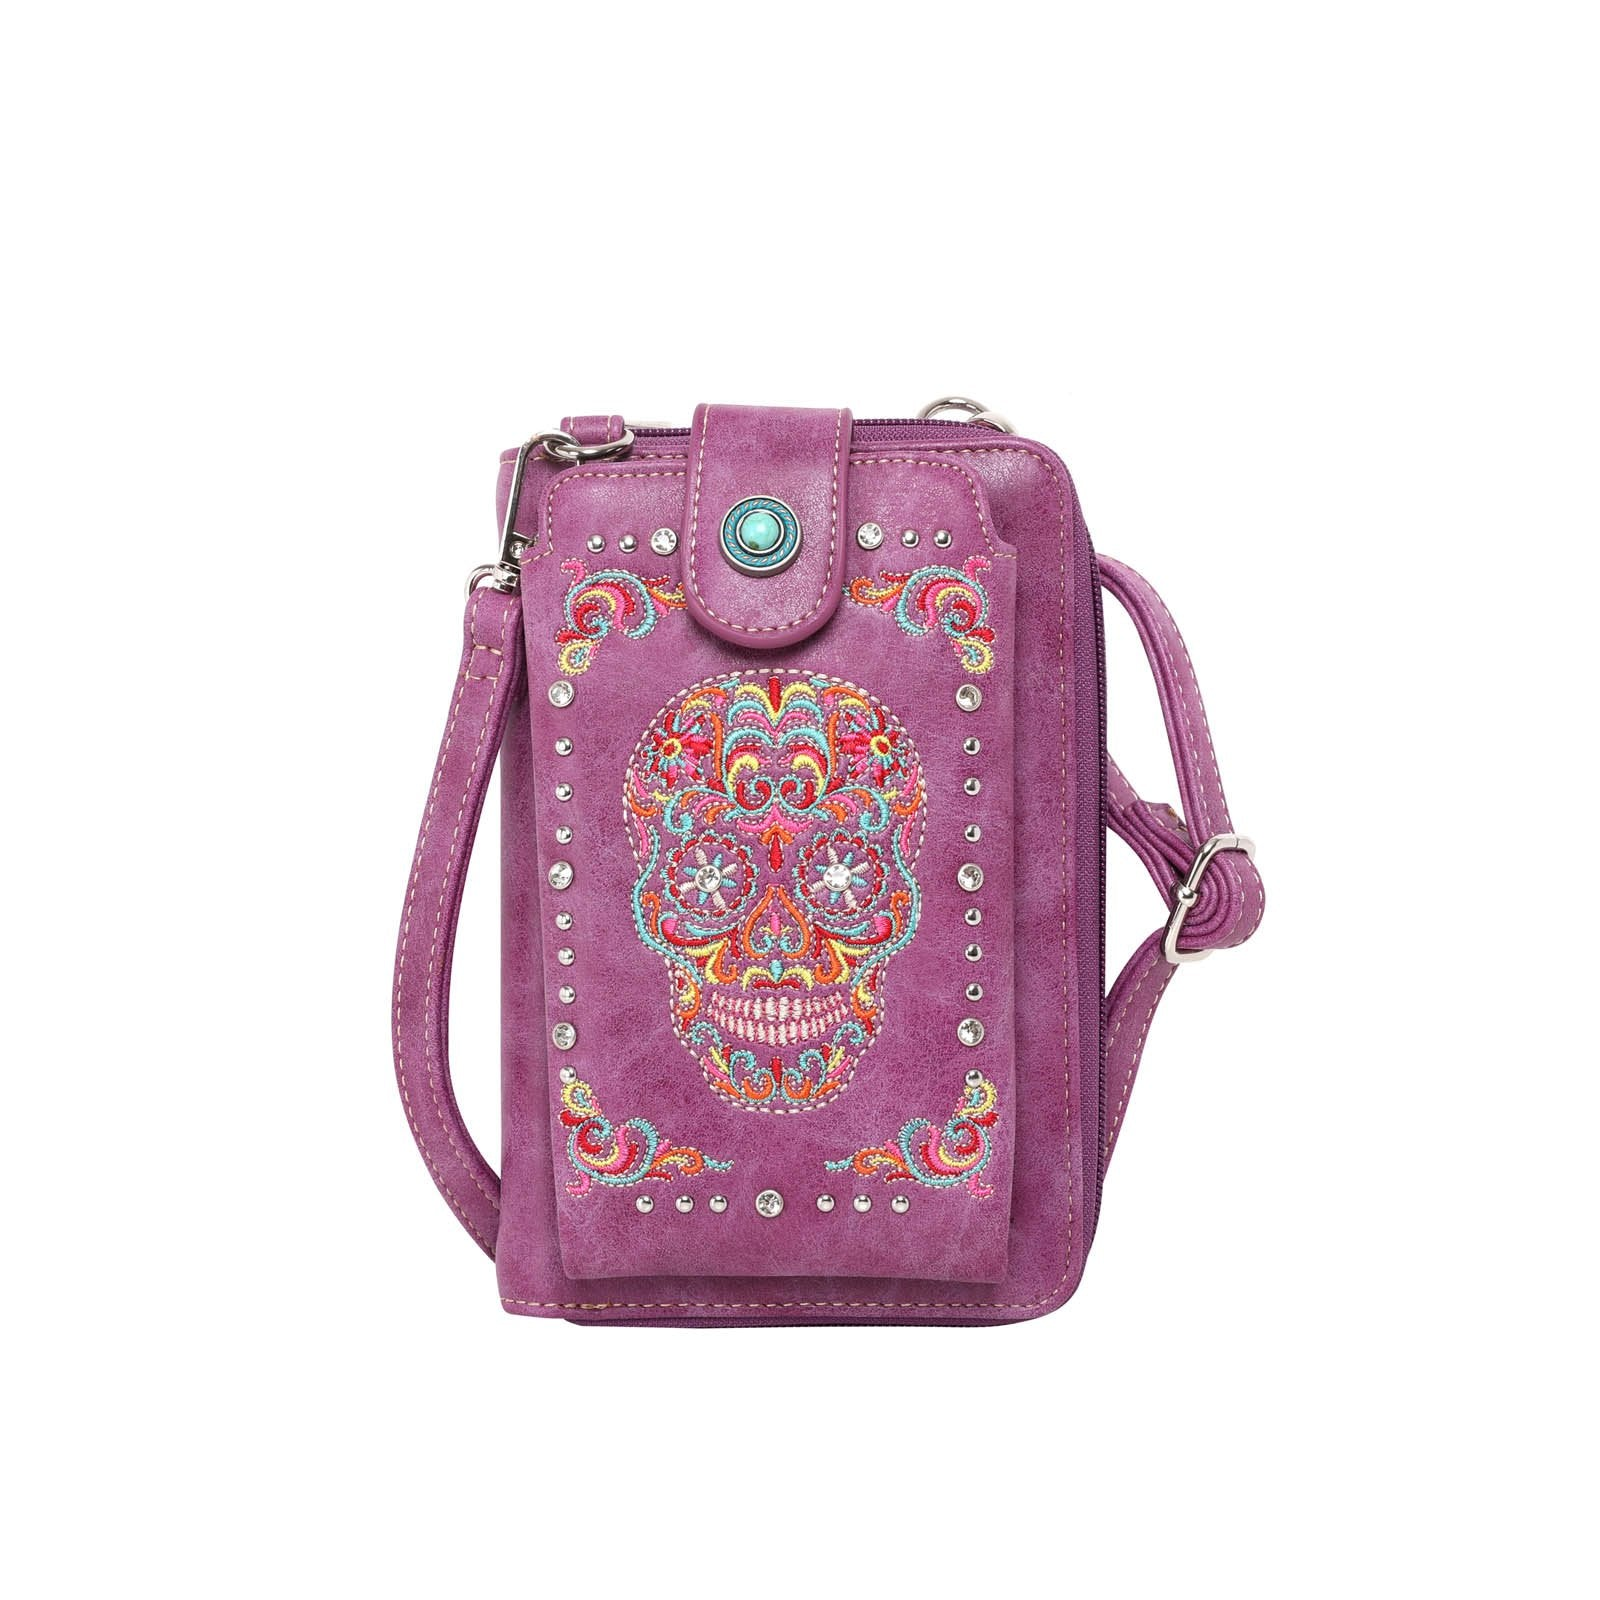 Montana West Sugar Skull Collection Phone Wallet Purse /Crossbody - Montana West World